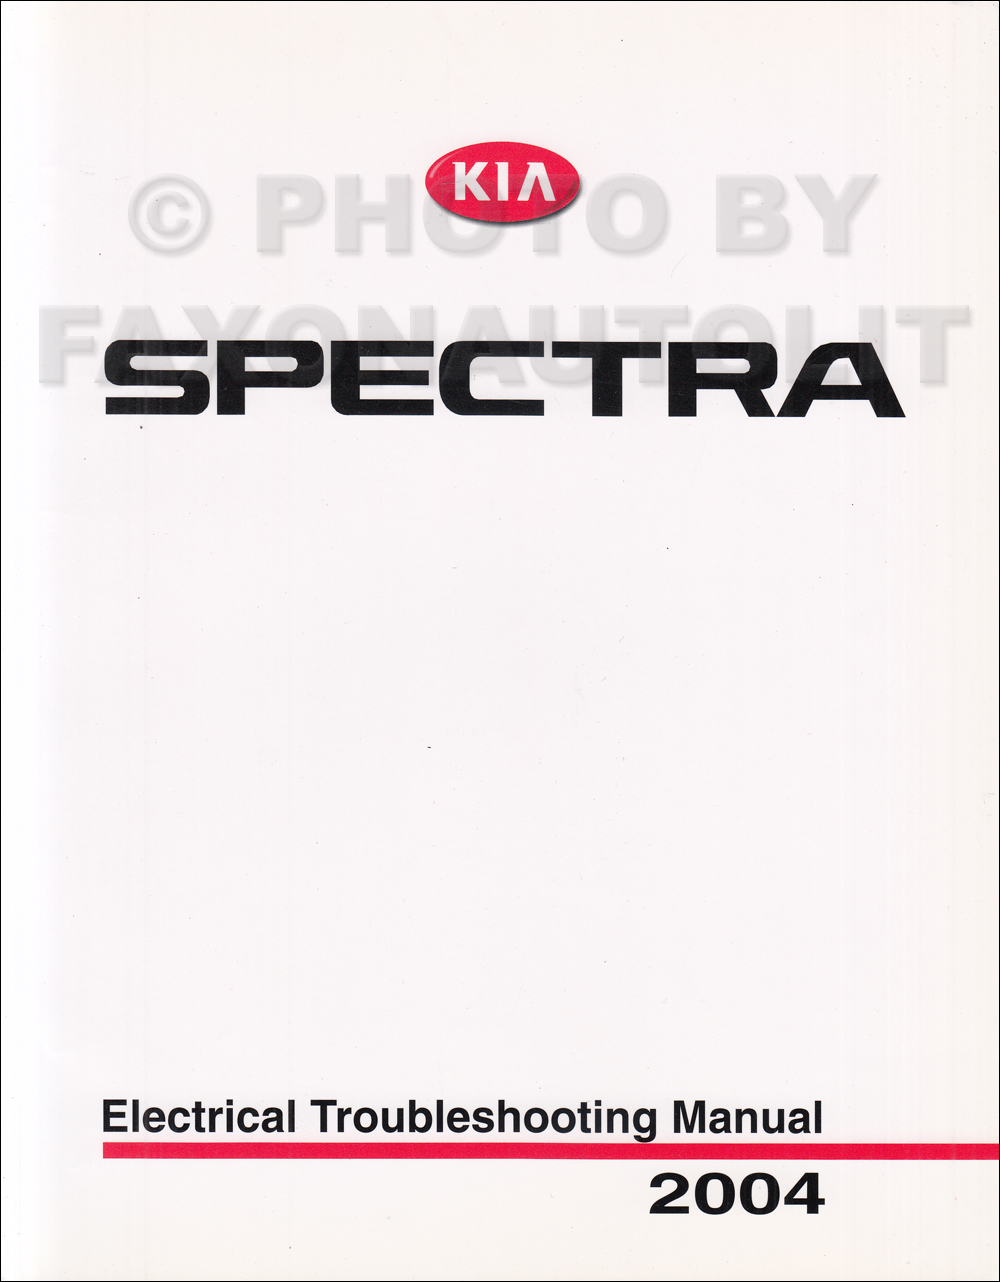 2004 Kia Spectra Electrical Troubleshooting Manual Original